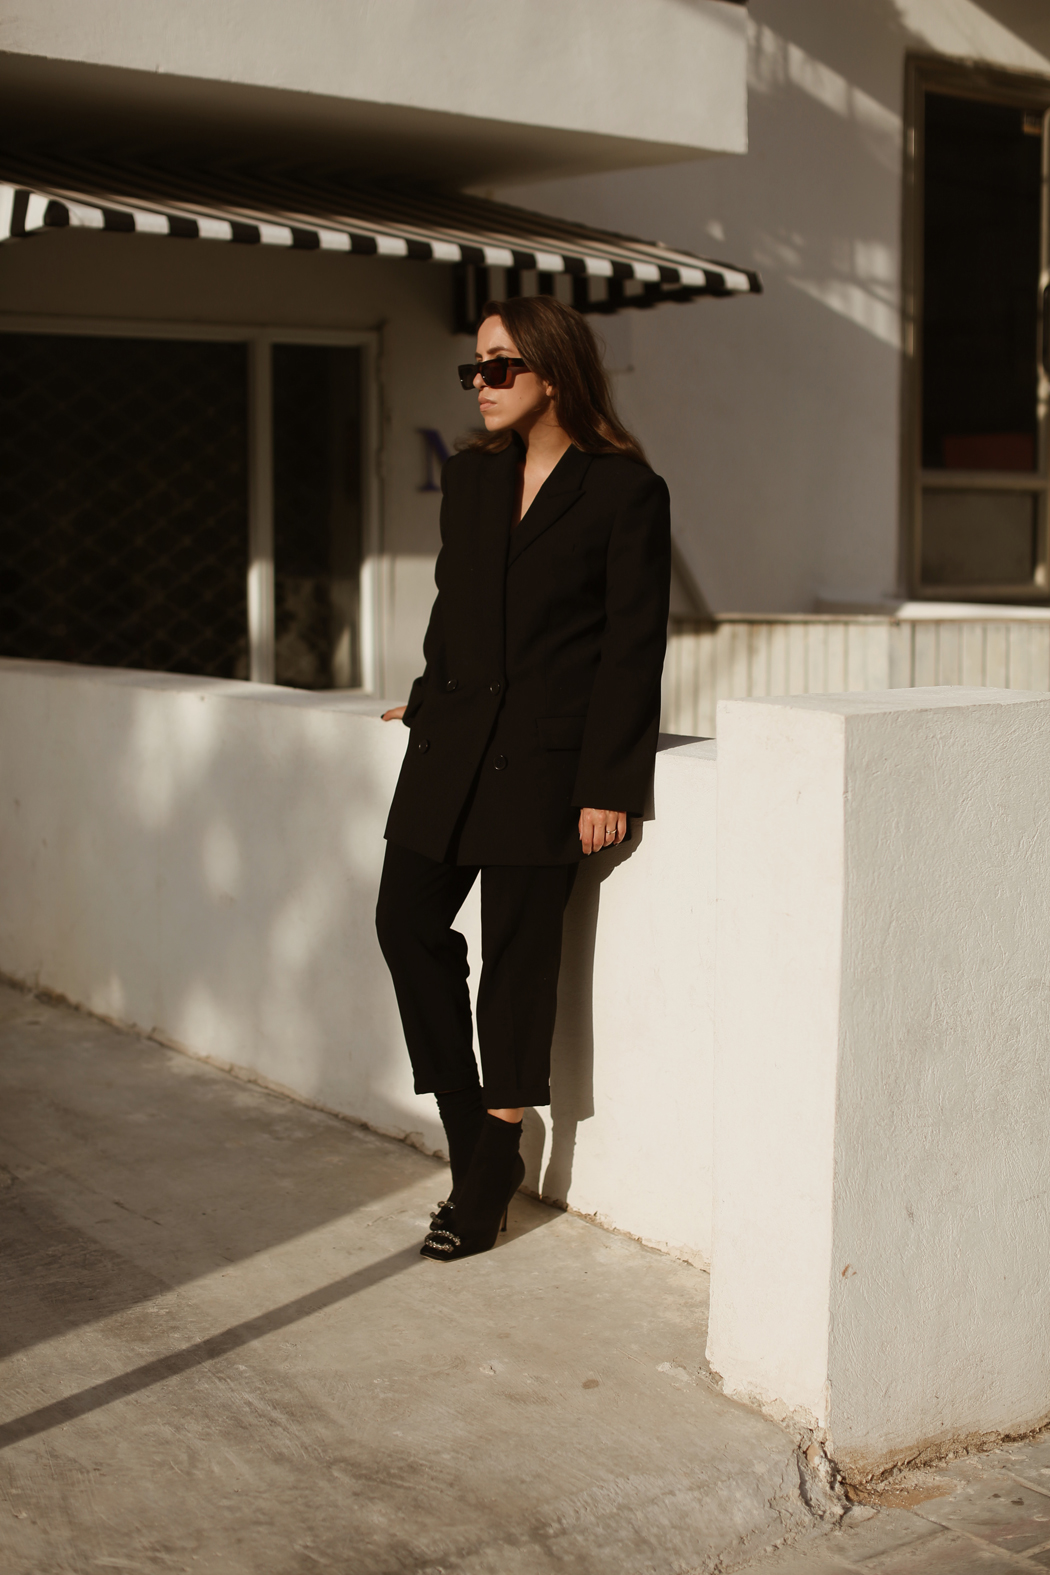 All Black Outfit Gucci Dionysus Pumps - A series by Fiona Dinkelbach